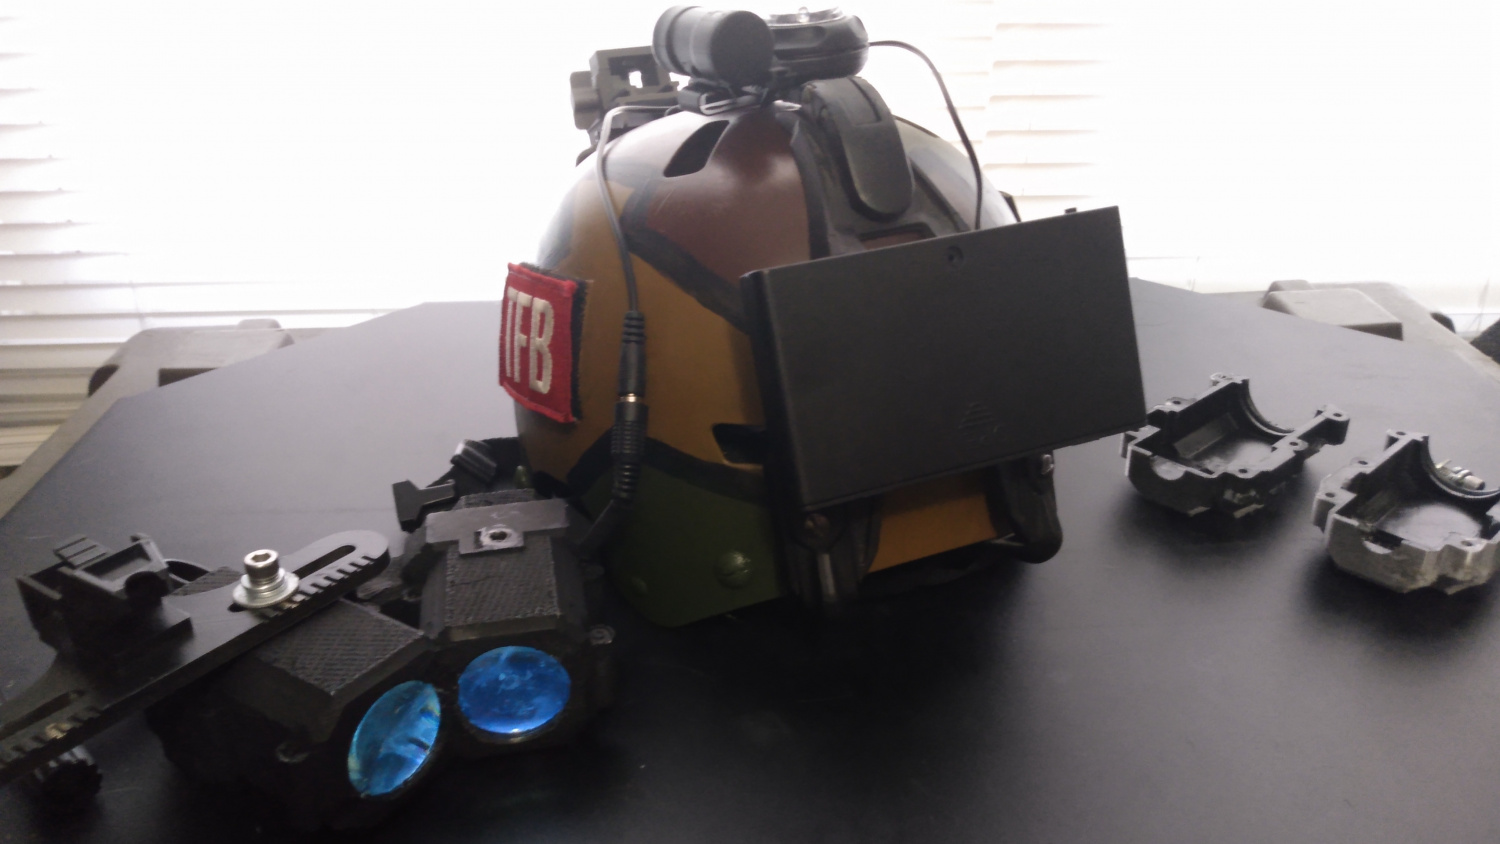 Open Source BPNVG (Bootleg Panoramic NVG) with TFB Reader Stubbs